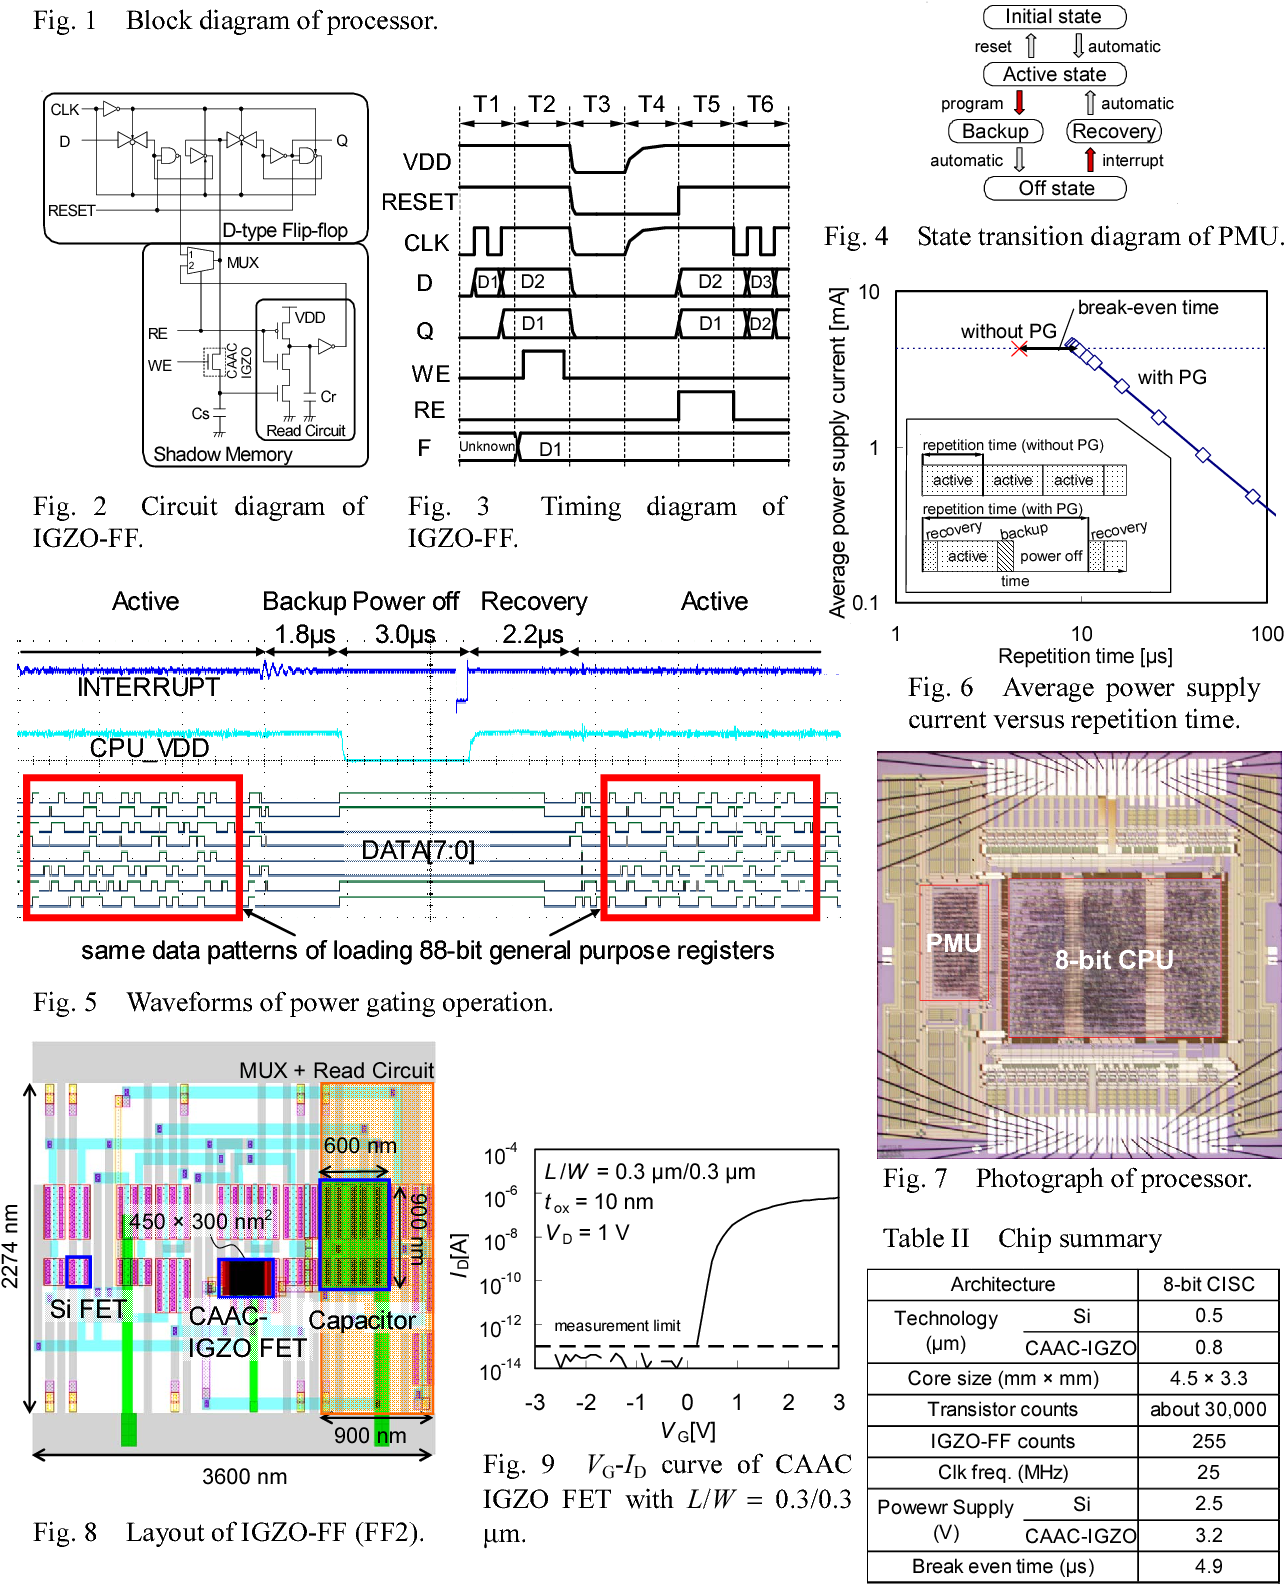 Processor with 4 9-μs break-even time in power gating using